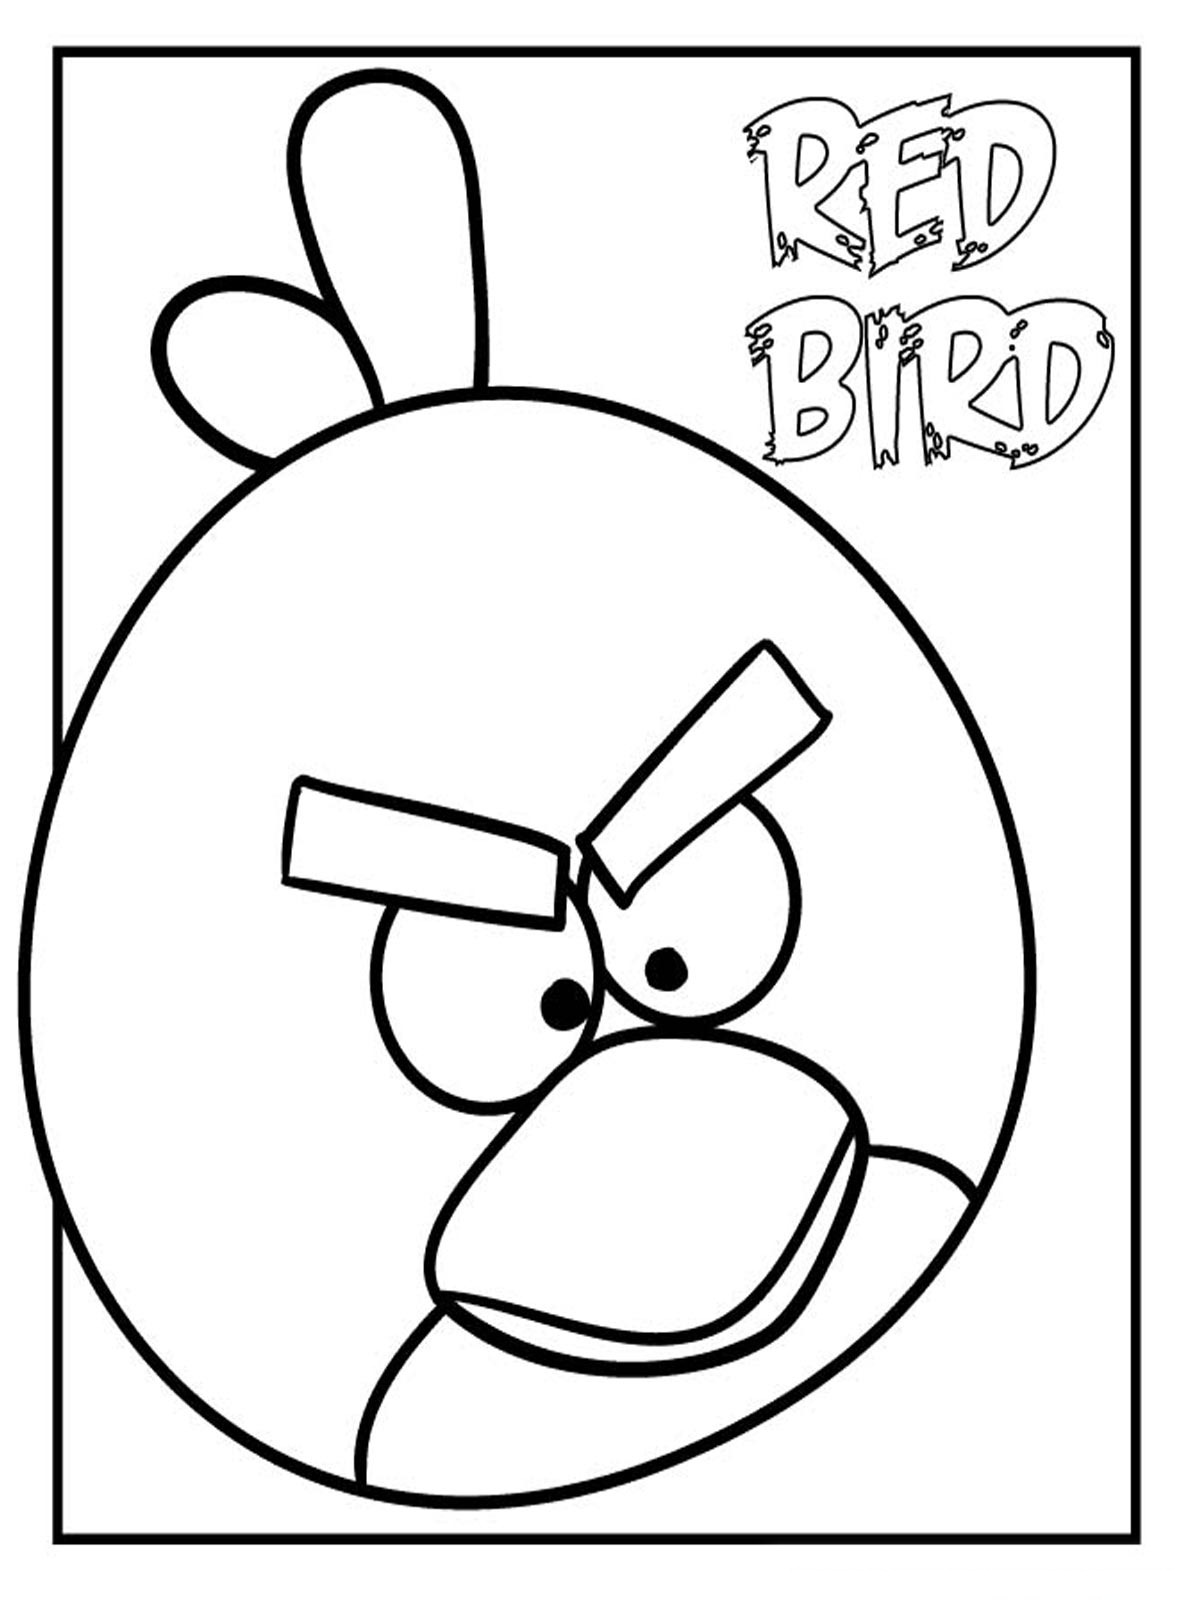 angry birds pictures to color and print angry birds coloring pages for your small kids to birds pictures print and angry color